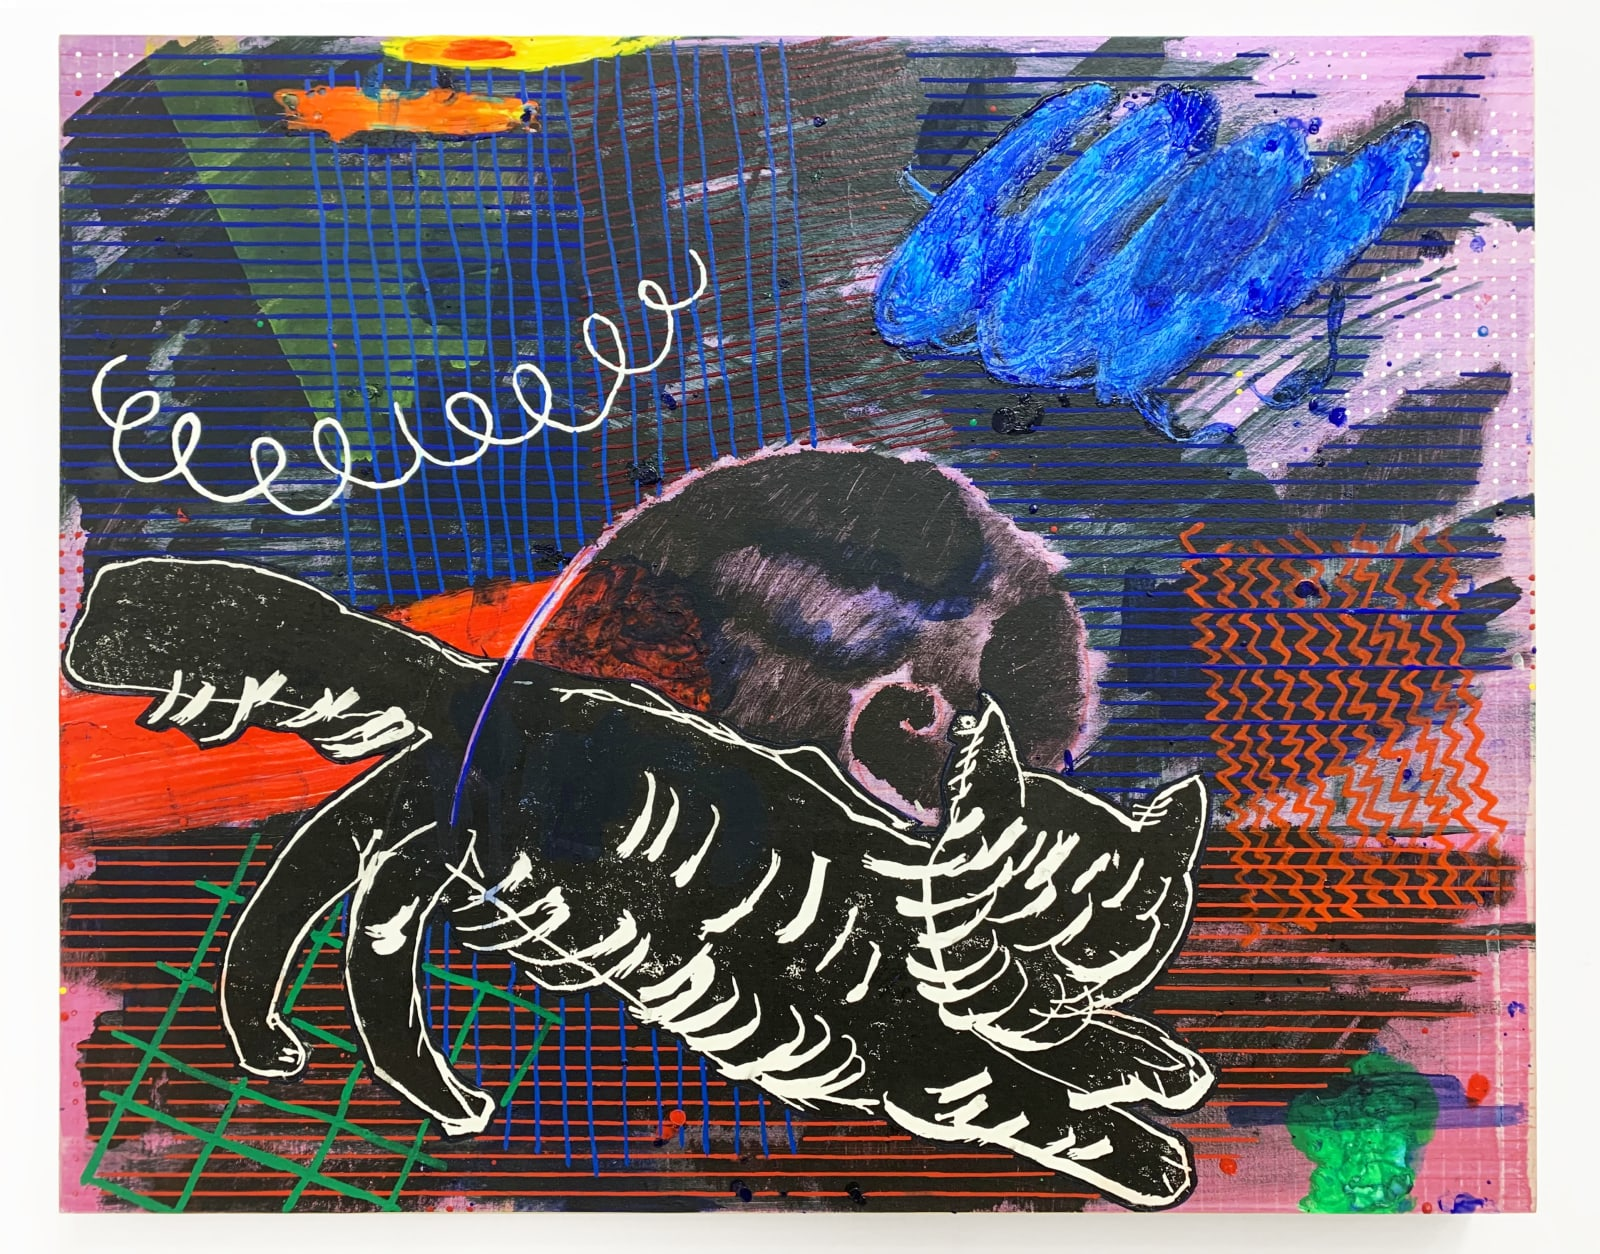 Chie Fueki, Healer Cat and Fibonnaci Sprial, 2020 Acrylic, Ink and Colored Pencil on Mulberry Paper on Panel, 16 x 20 in